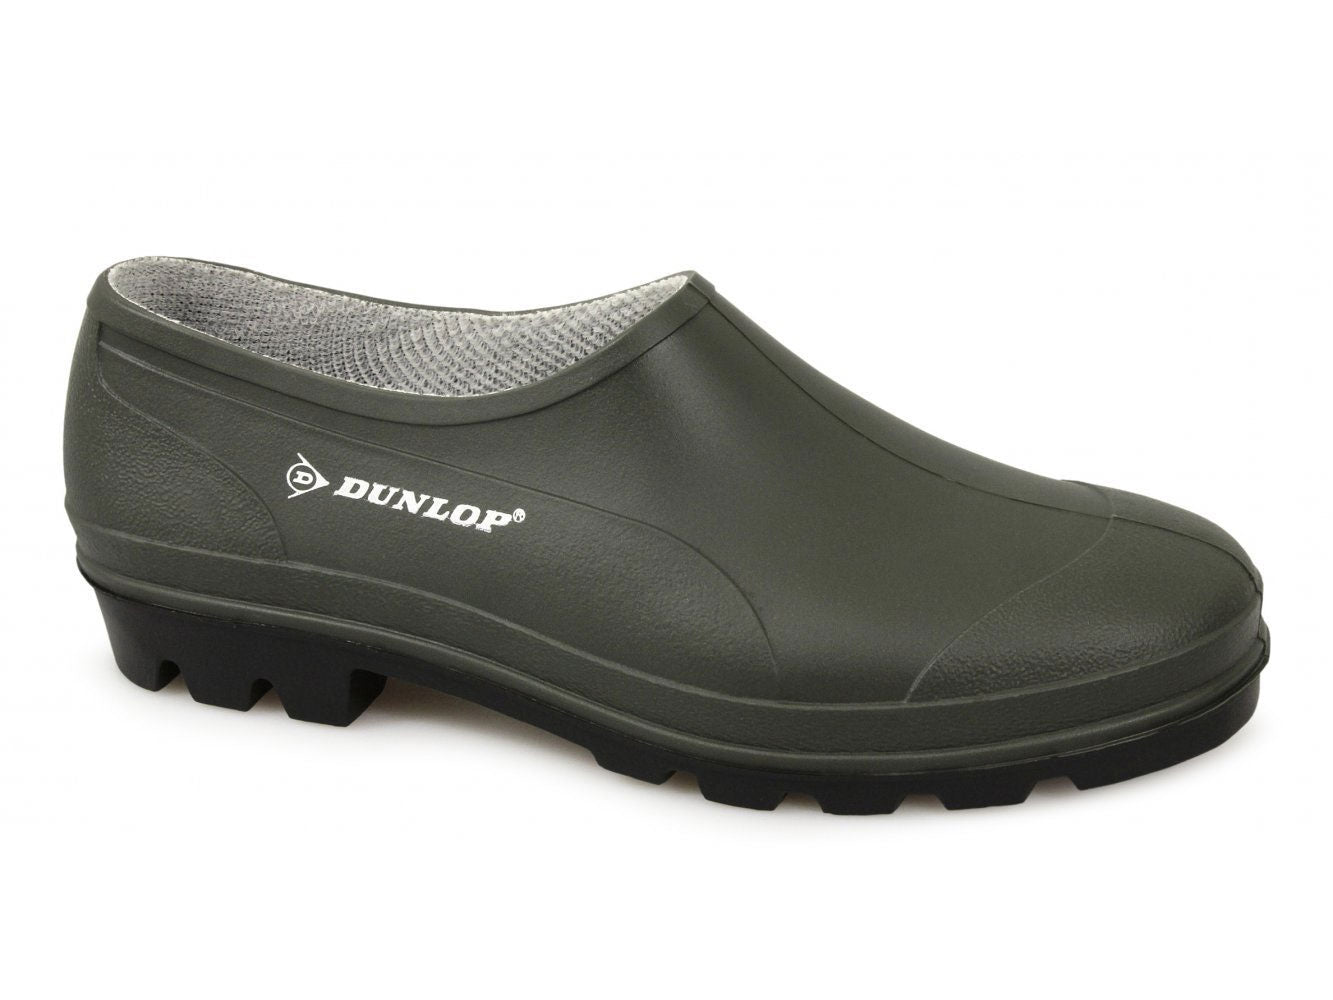 green Dunlop Garden Wet Grass Shoe short wellington